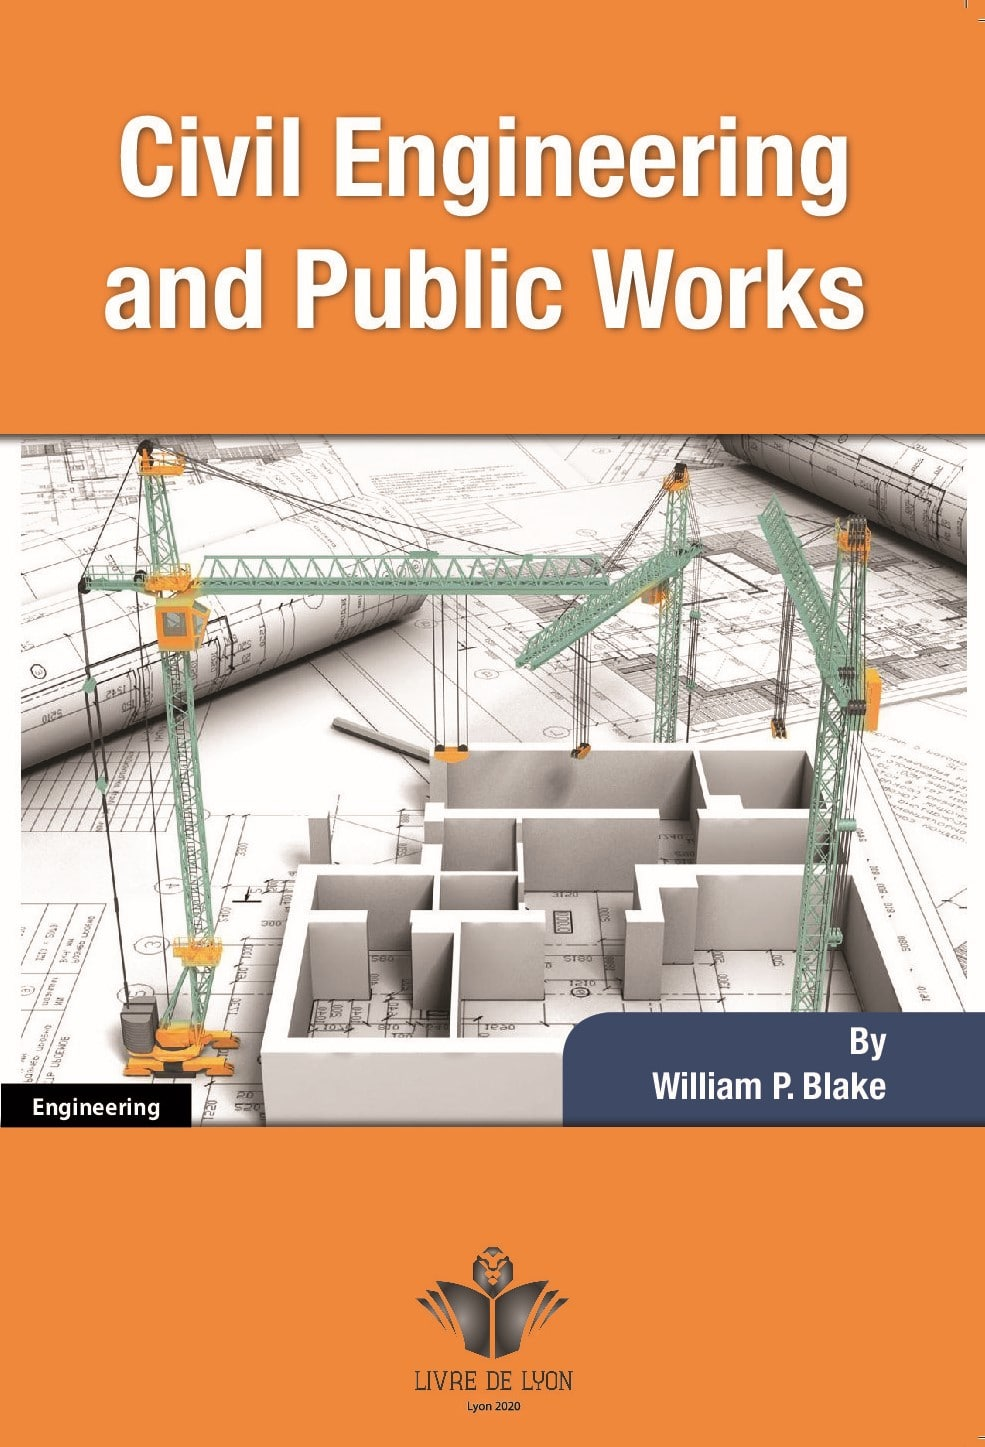 Civil Engineering and Public Works